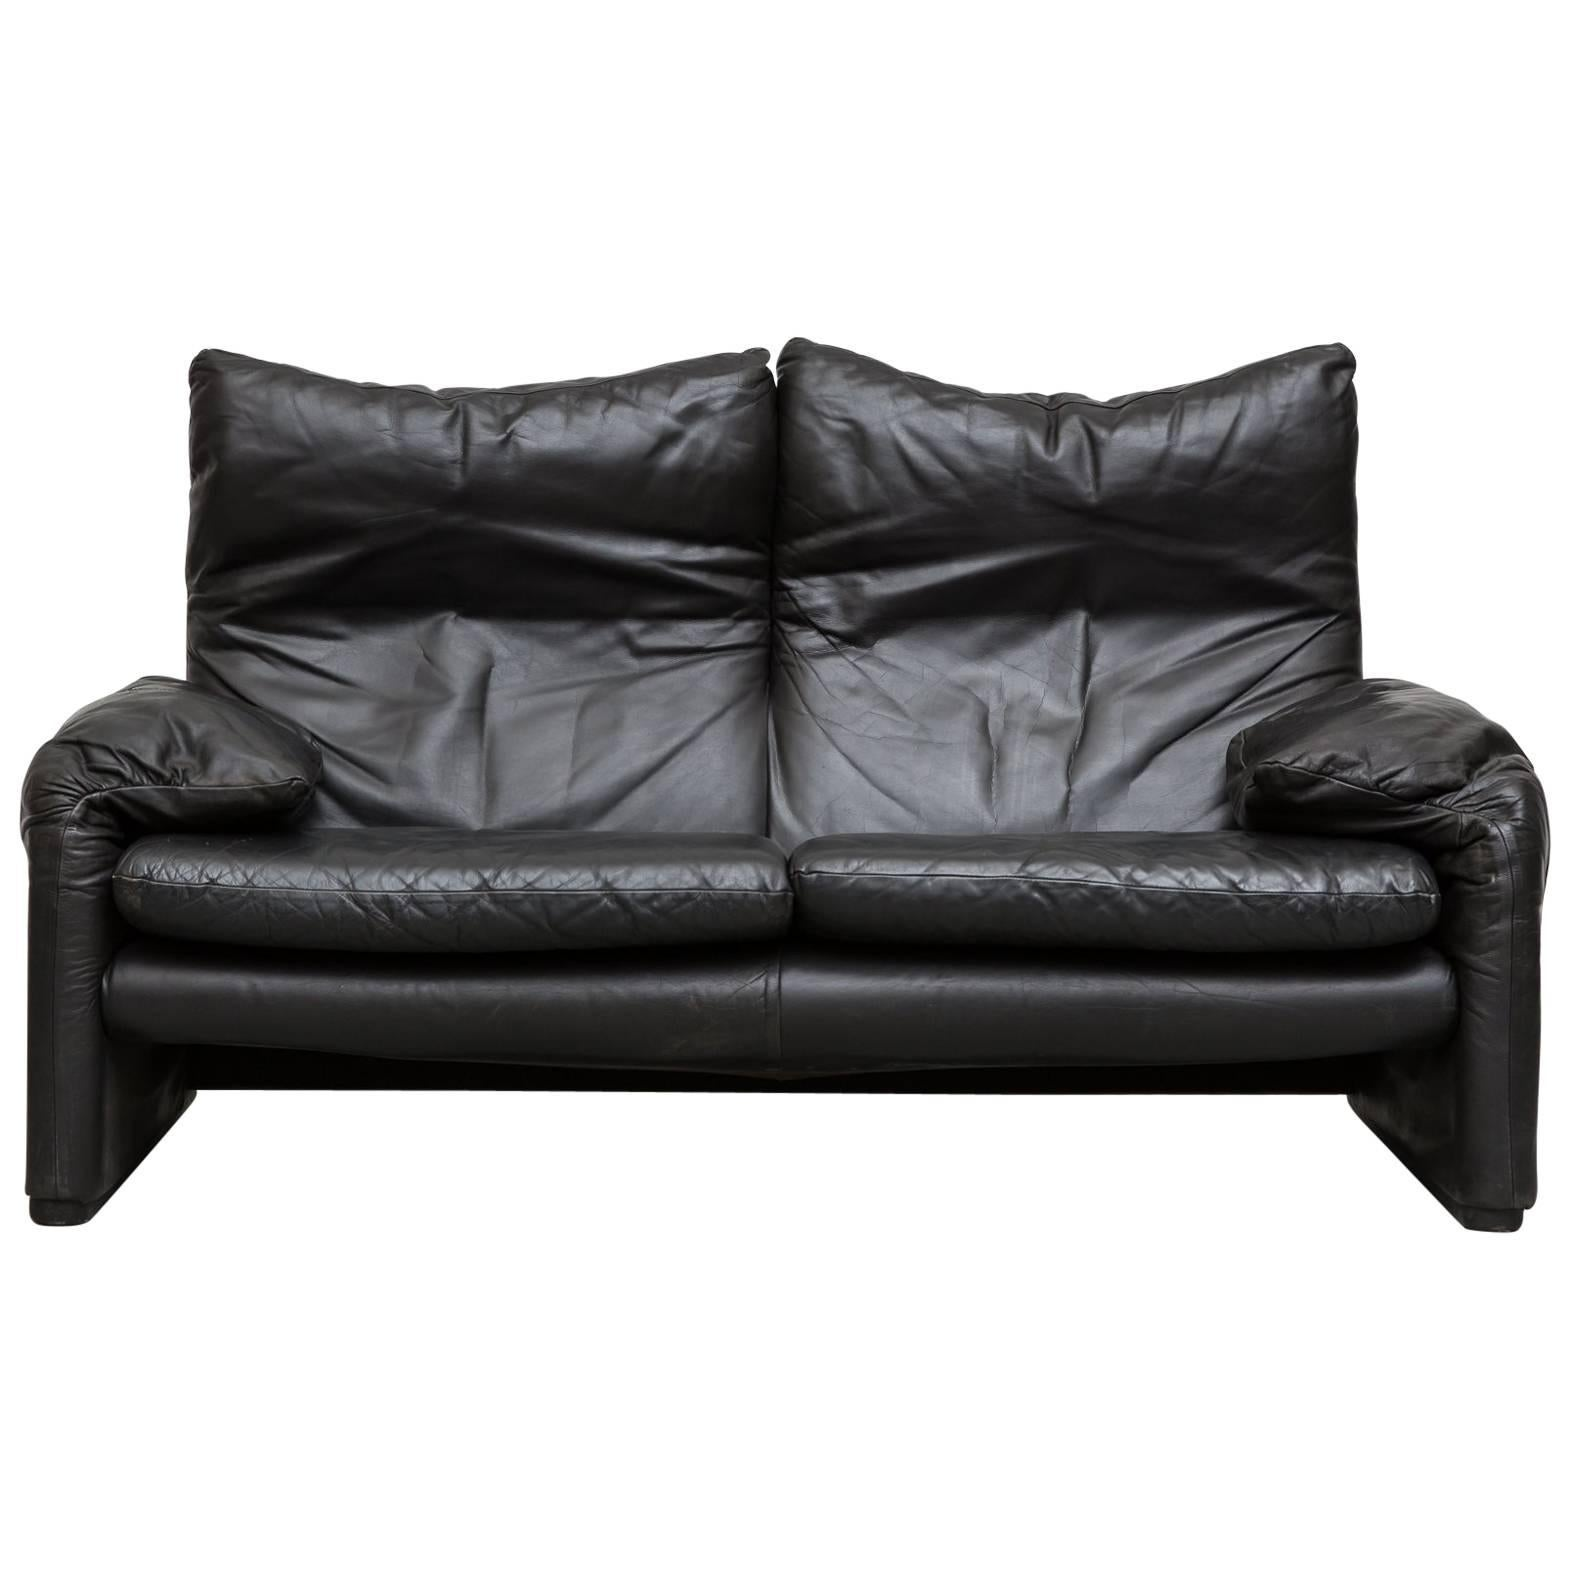 black leather loveseat by vico magistretti